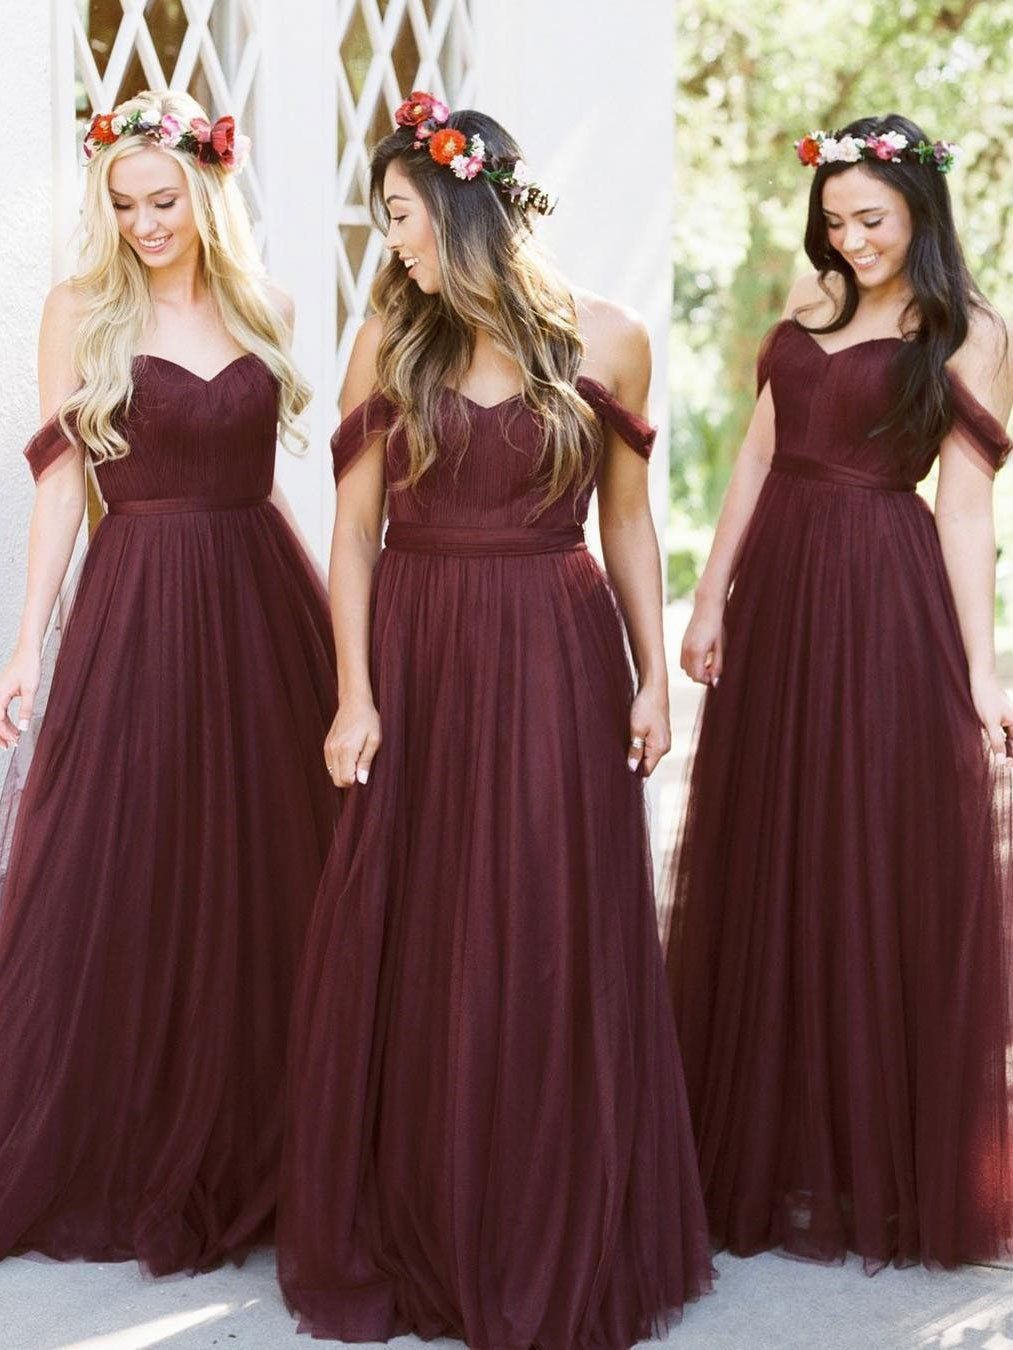 441afdc1bf08 Off the Shoulder Tulle Blush Pink Bridesmaid Dresses Maroon ...